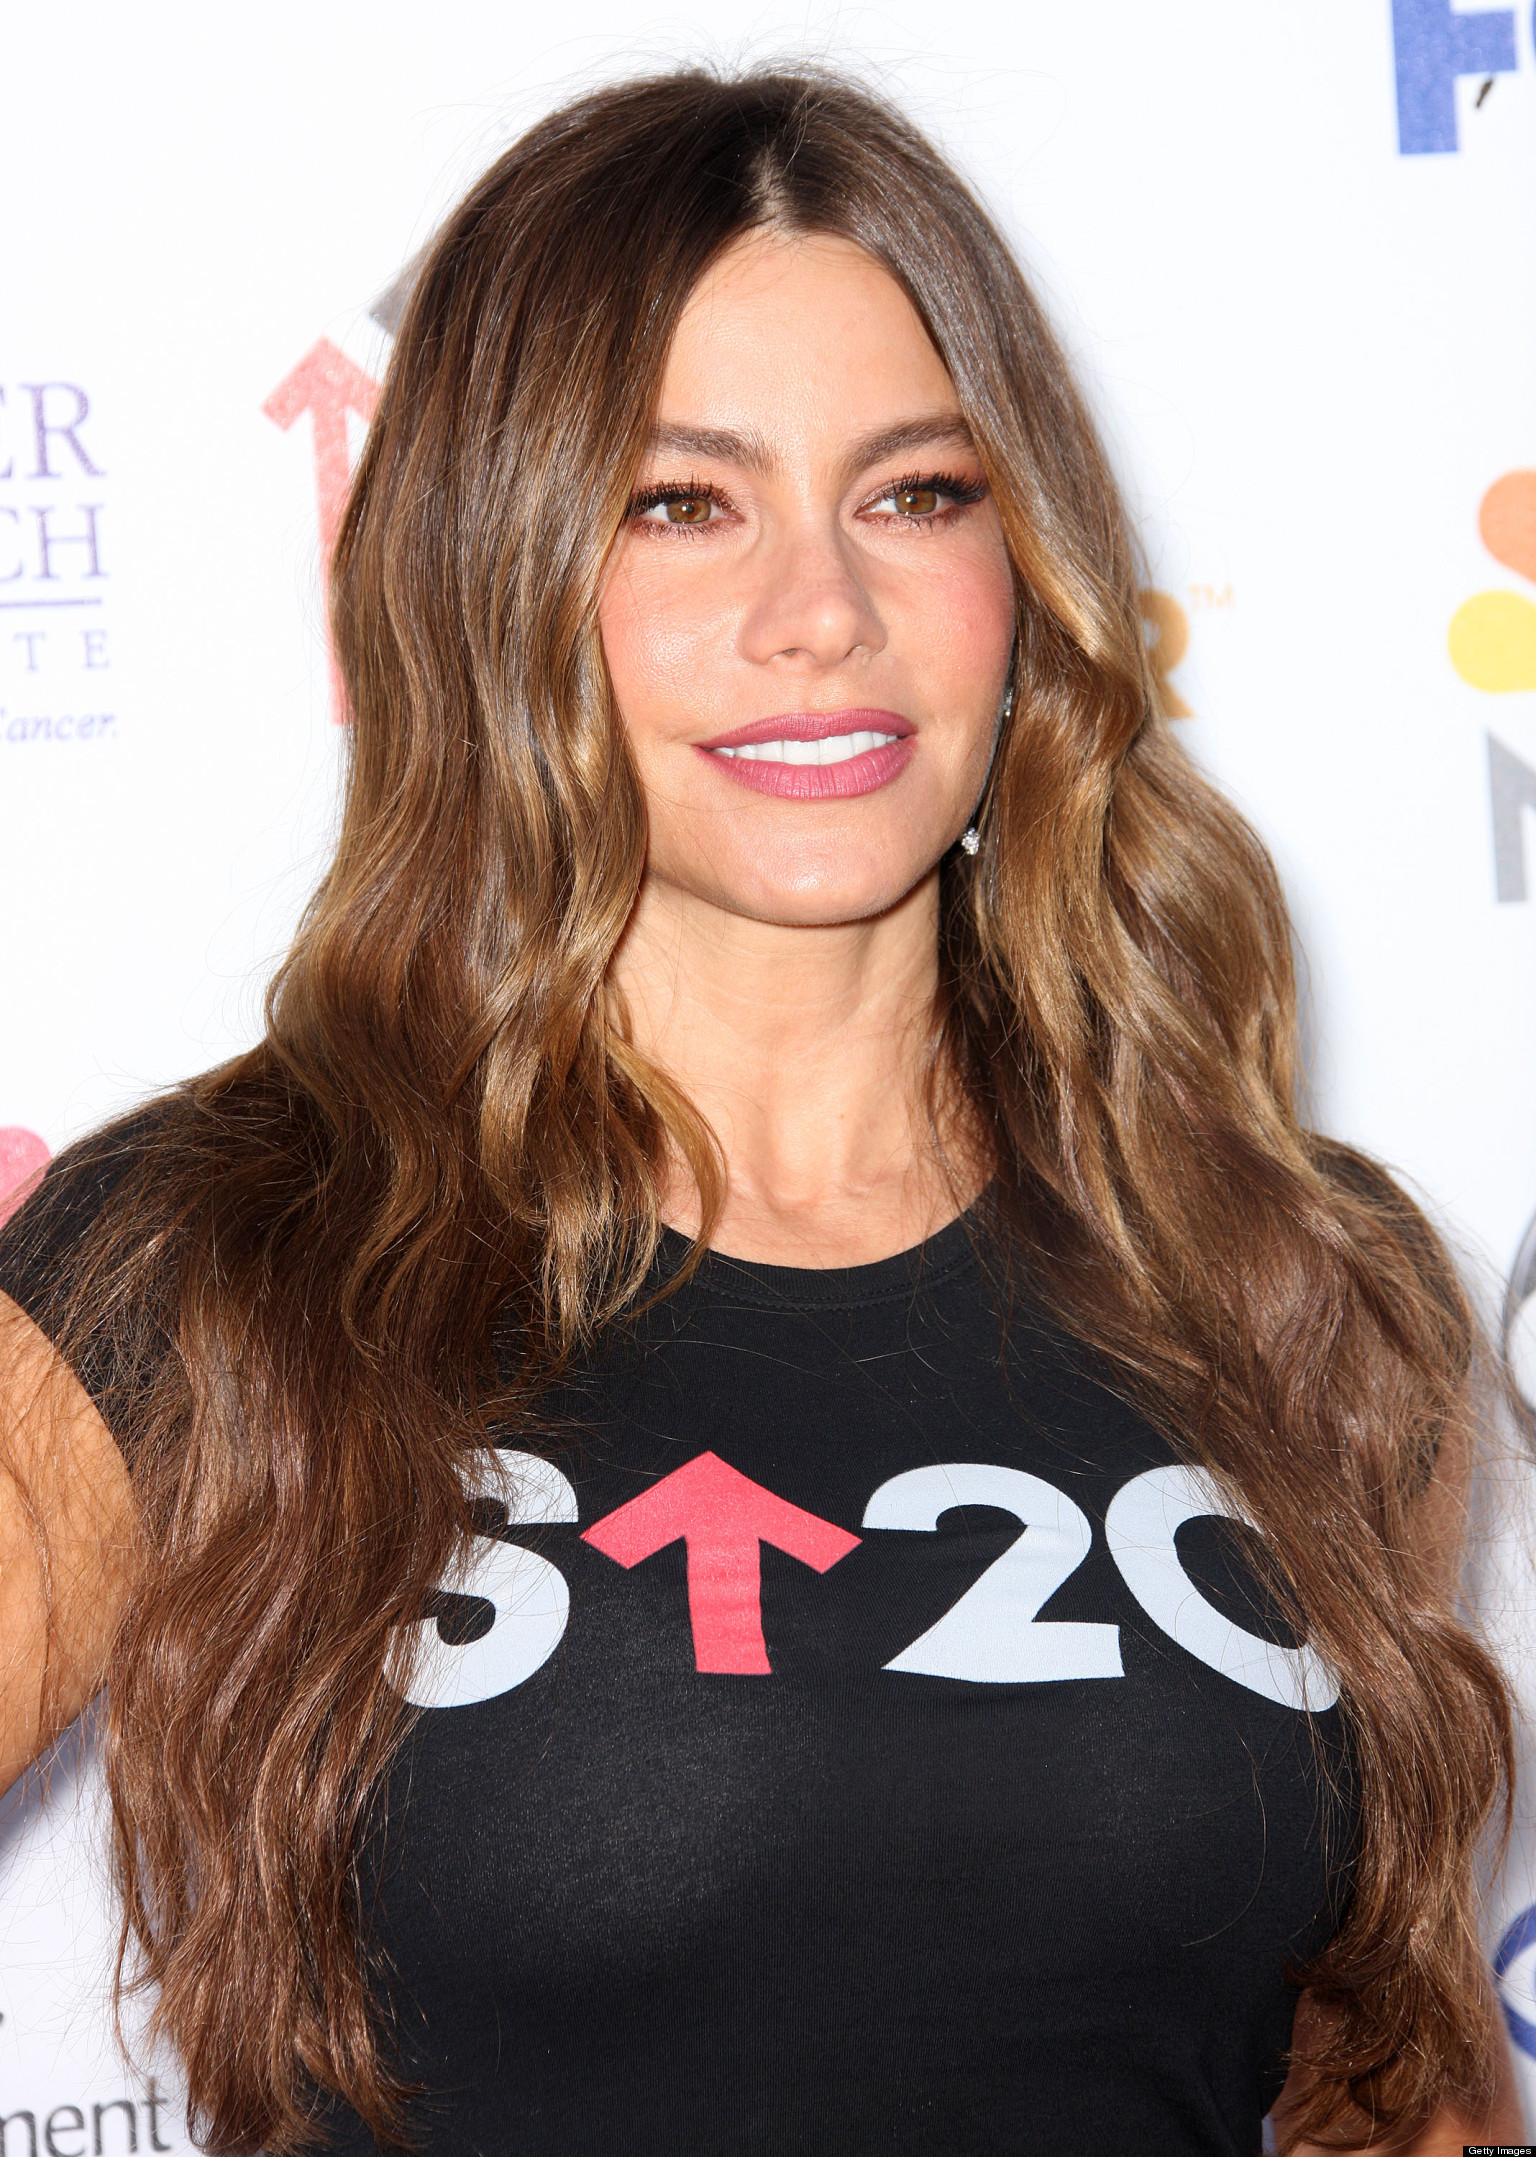 Sofia Vergara Thyroid Cancer Star Talks About Her Hypothyroidism Diagnosis And How It Affects Life Huffpost